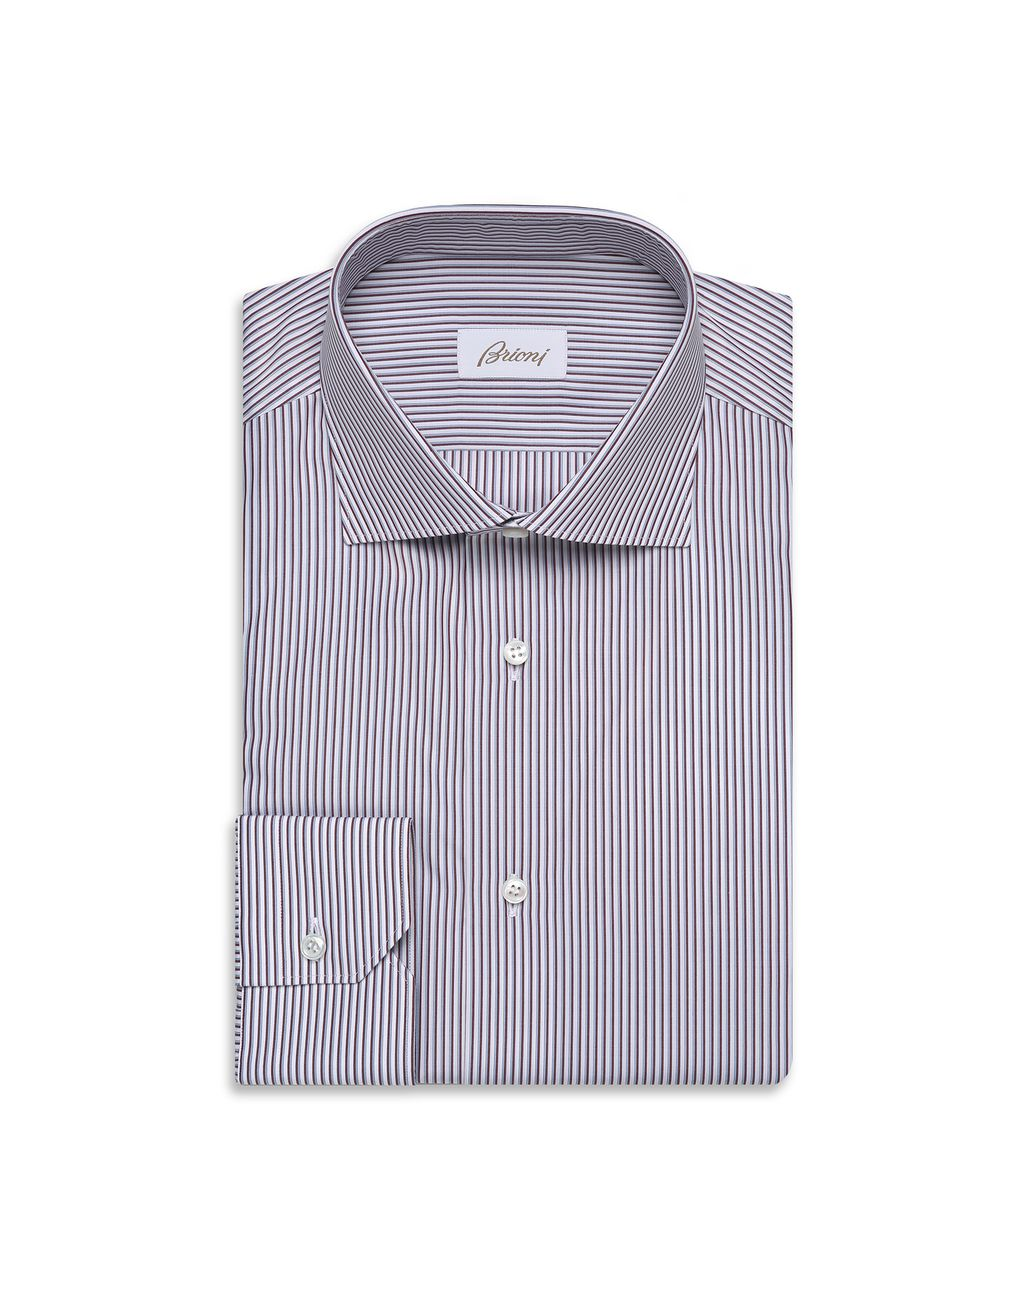 BRIONI Bordeaux and Sky-Blue Striped Formal Shirt Formal shirt Man f